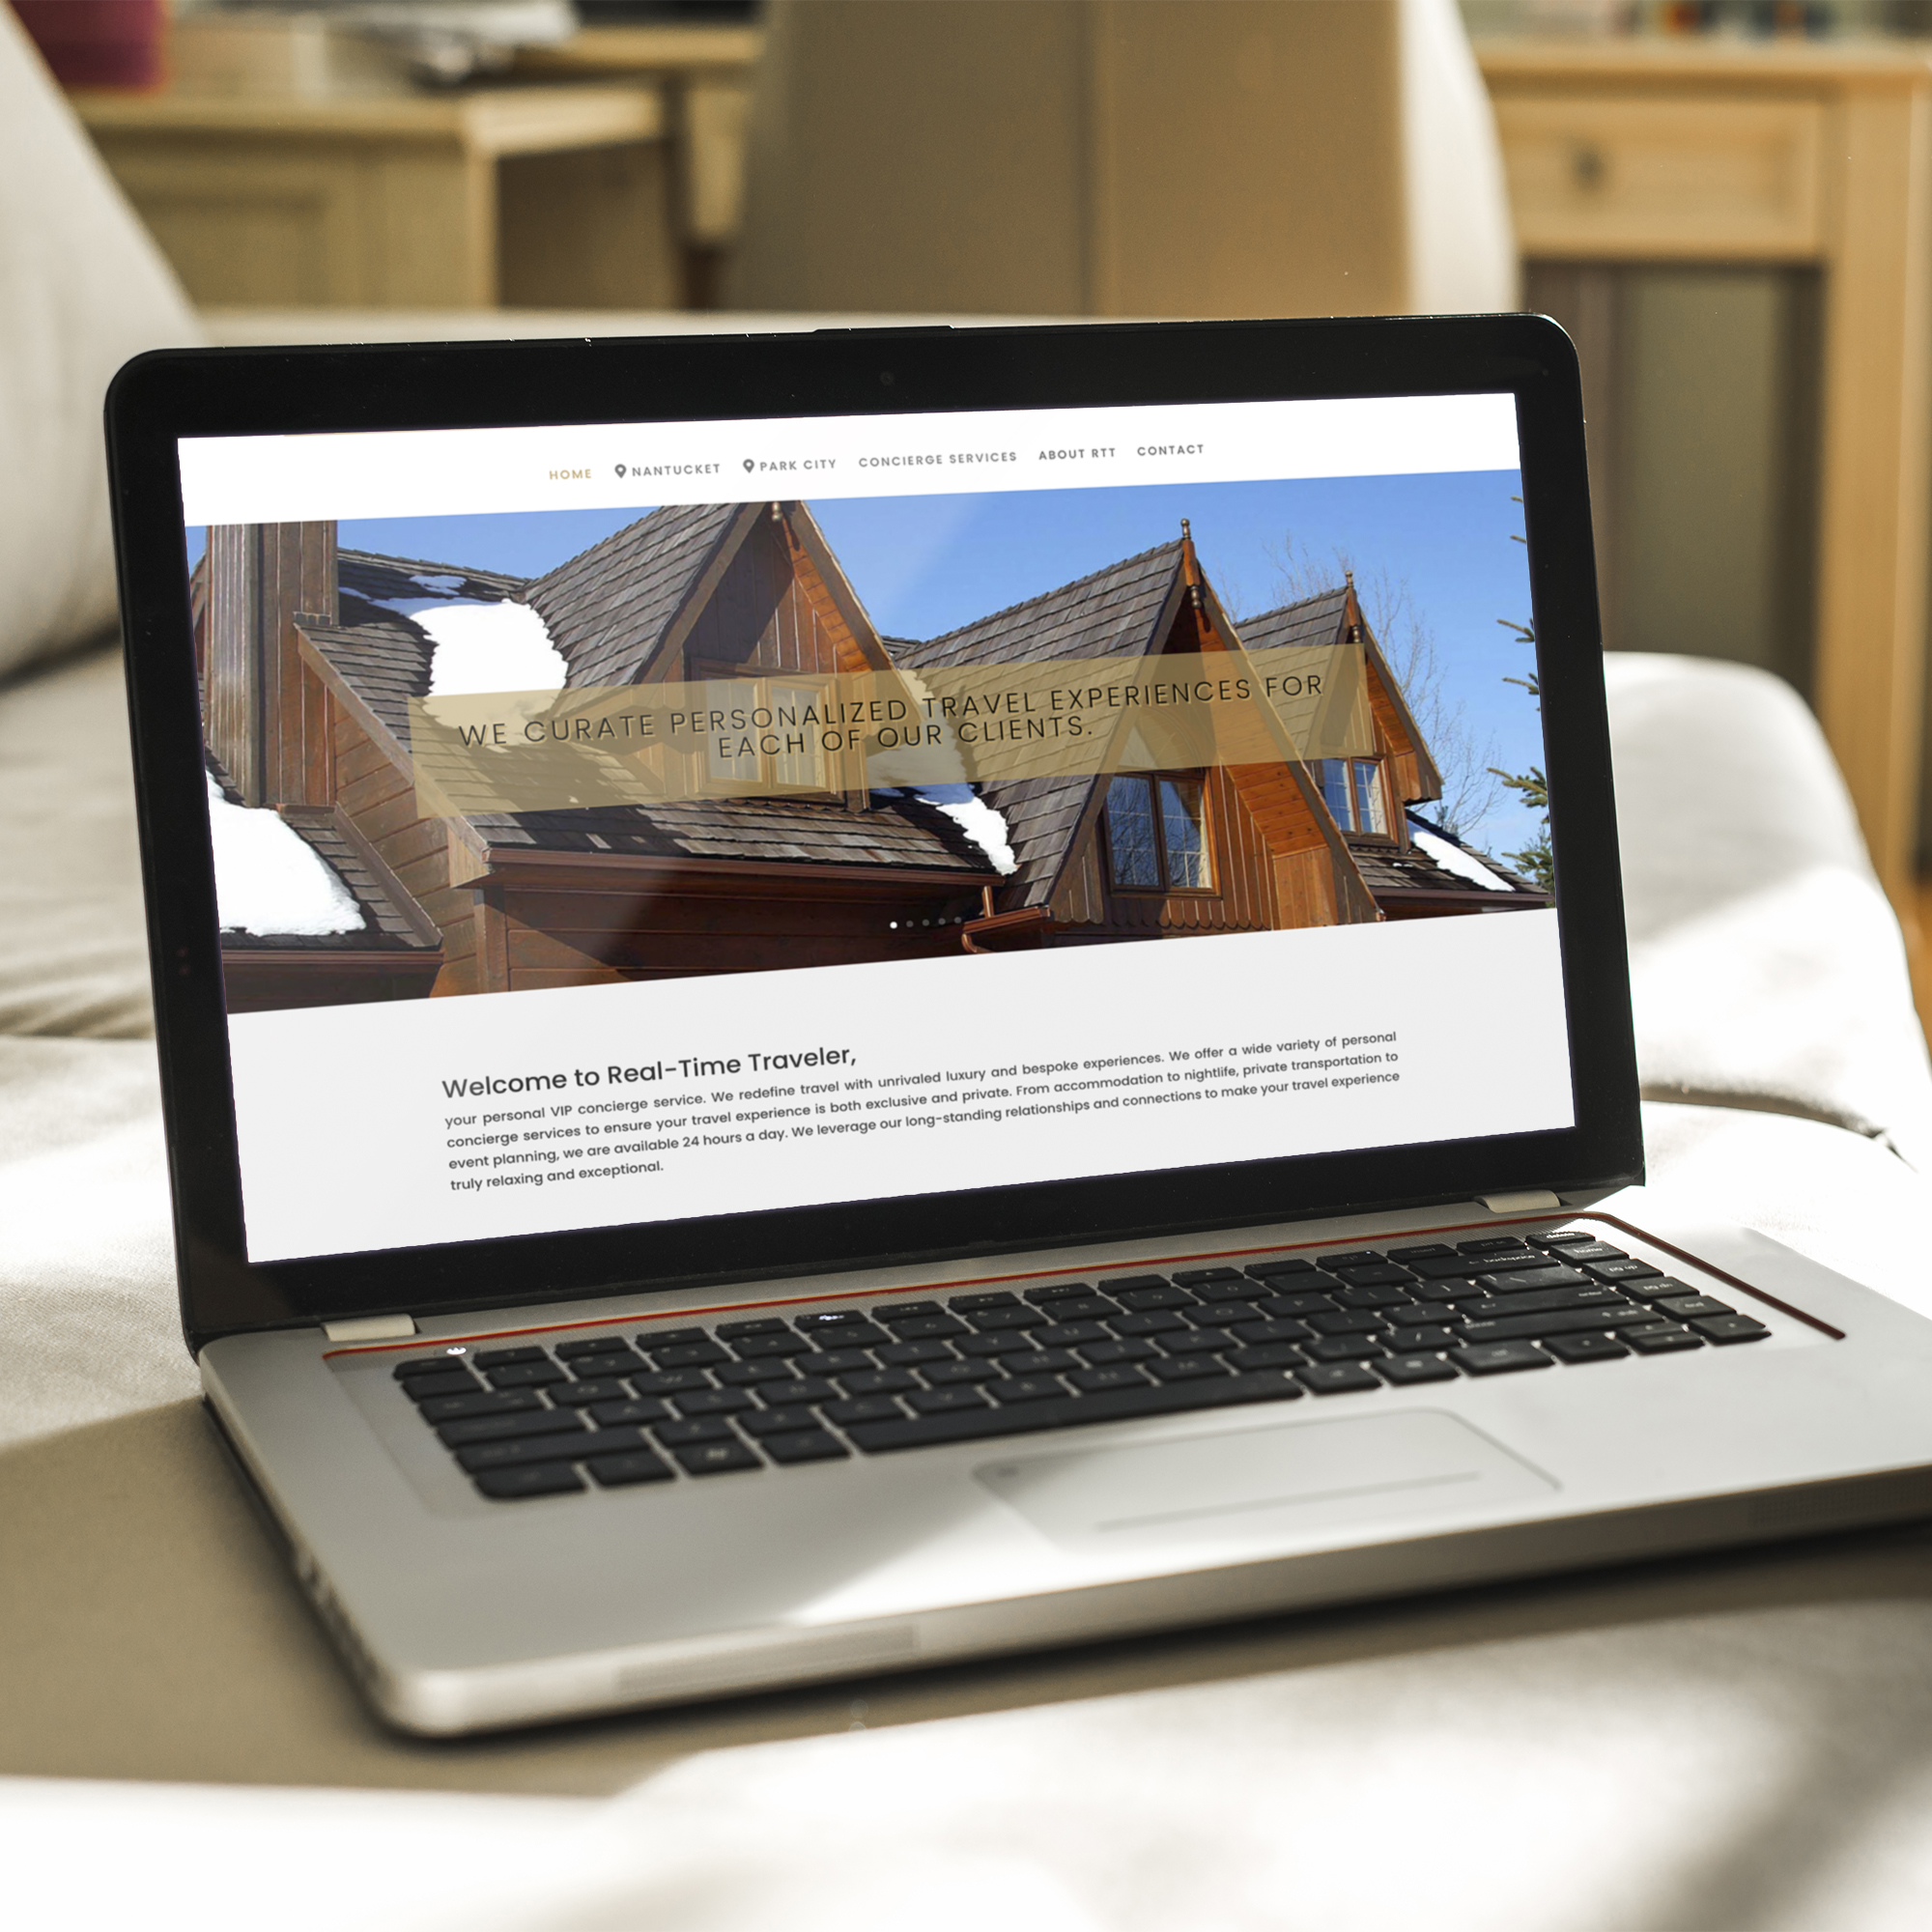 Logo and website design done for a concierge service